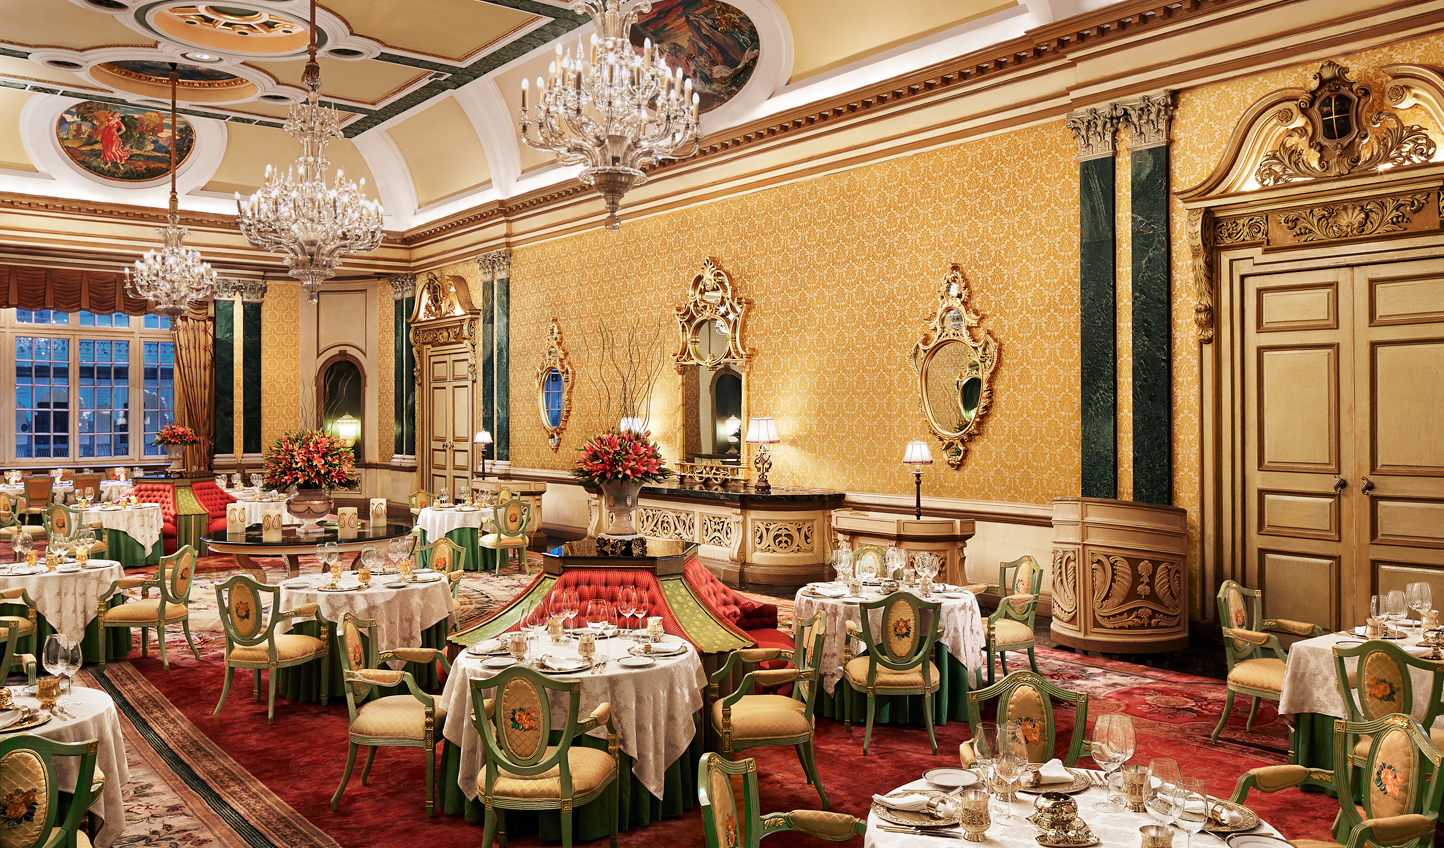 Dine in style in the former ballroom